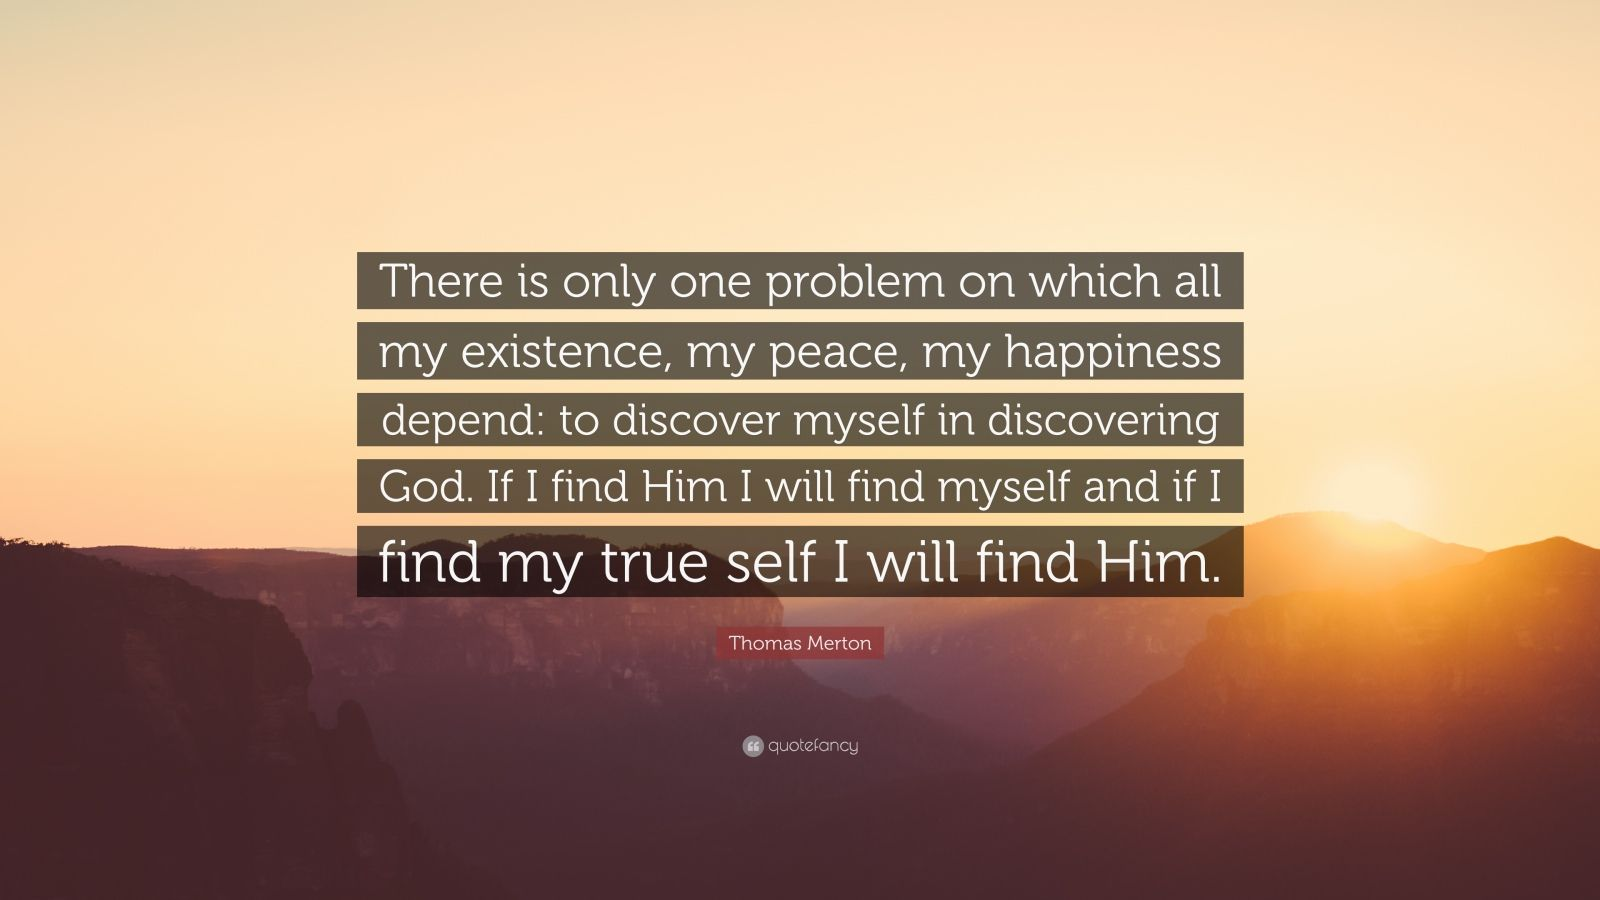 """Thomas Merton Quote: """"There is only one problem on which all my existence, my peace, my happiness depend: to discover myself in discovering God. If I find Him I will find myself and if I find my true self I will find Him."""""""